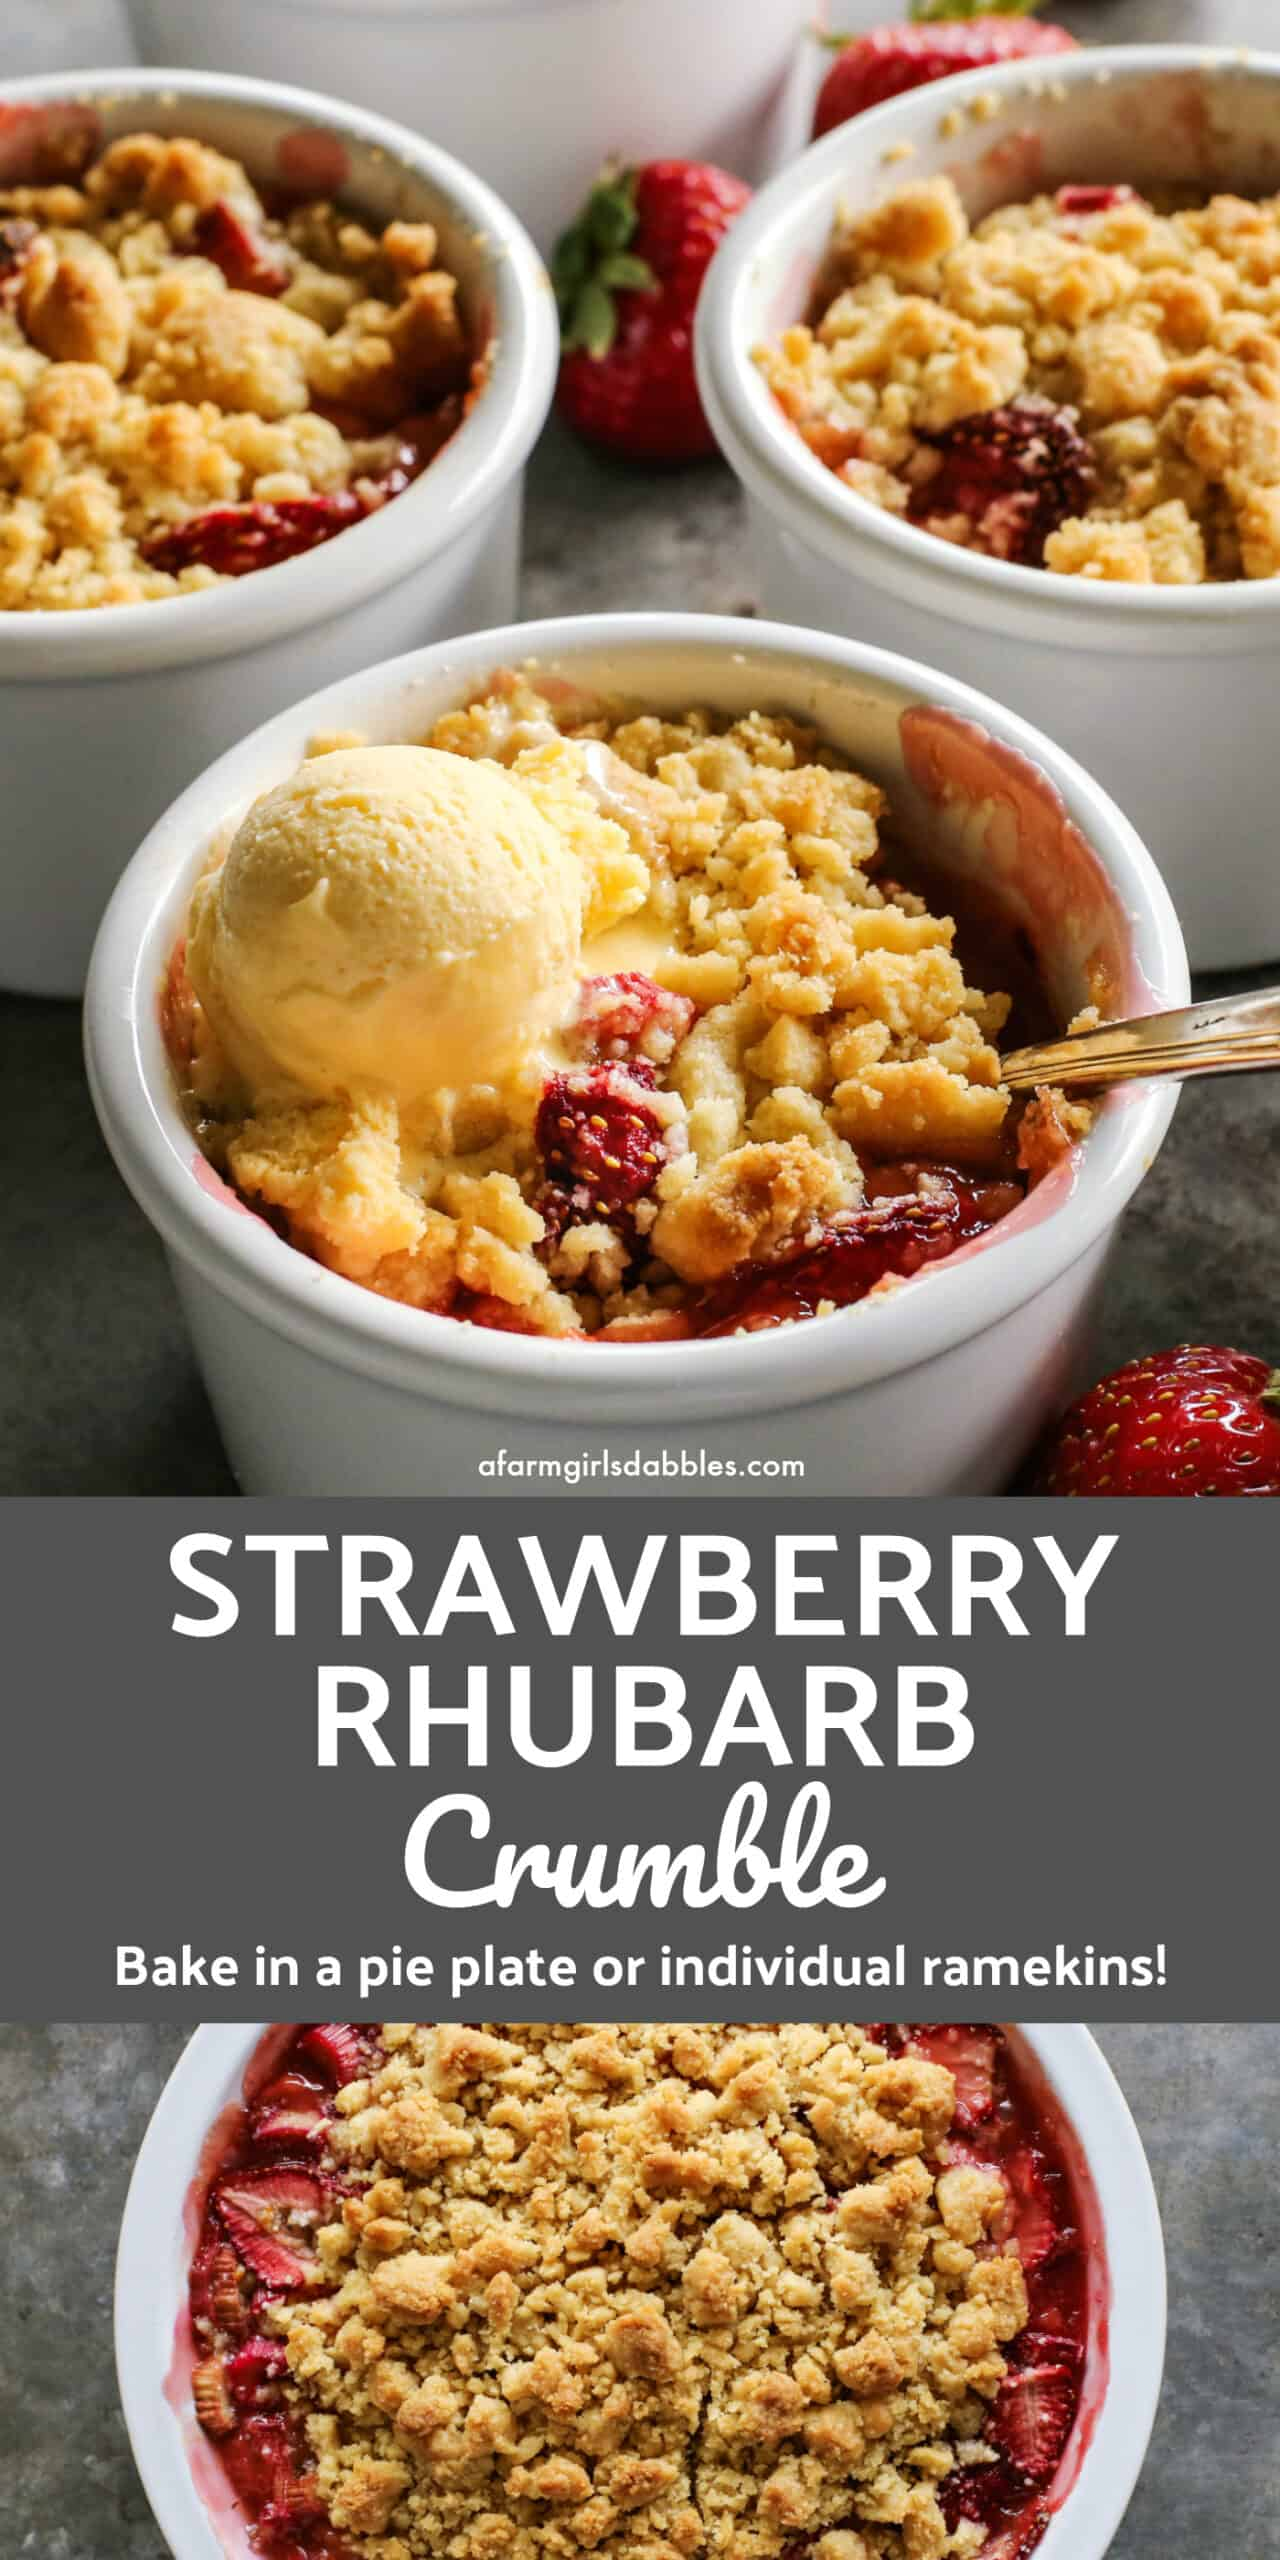 Pinterest image of Strawberry Rhubarb Crumble dessert